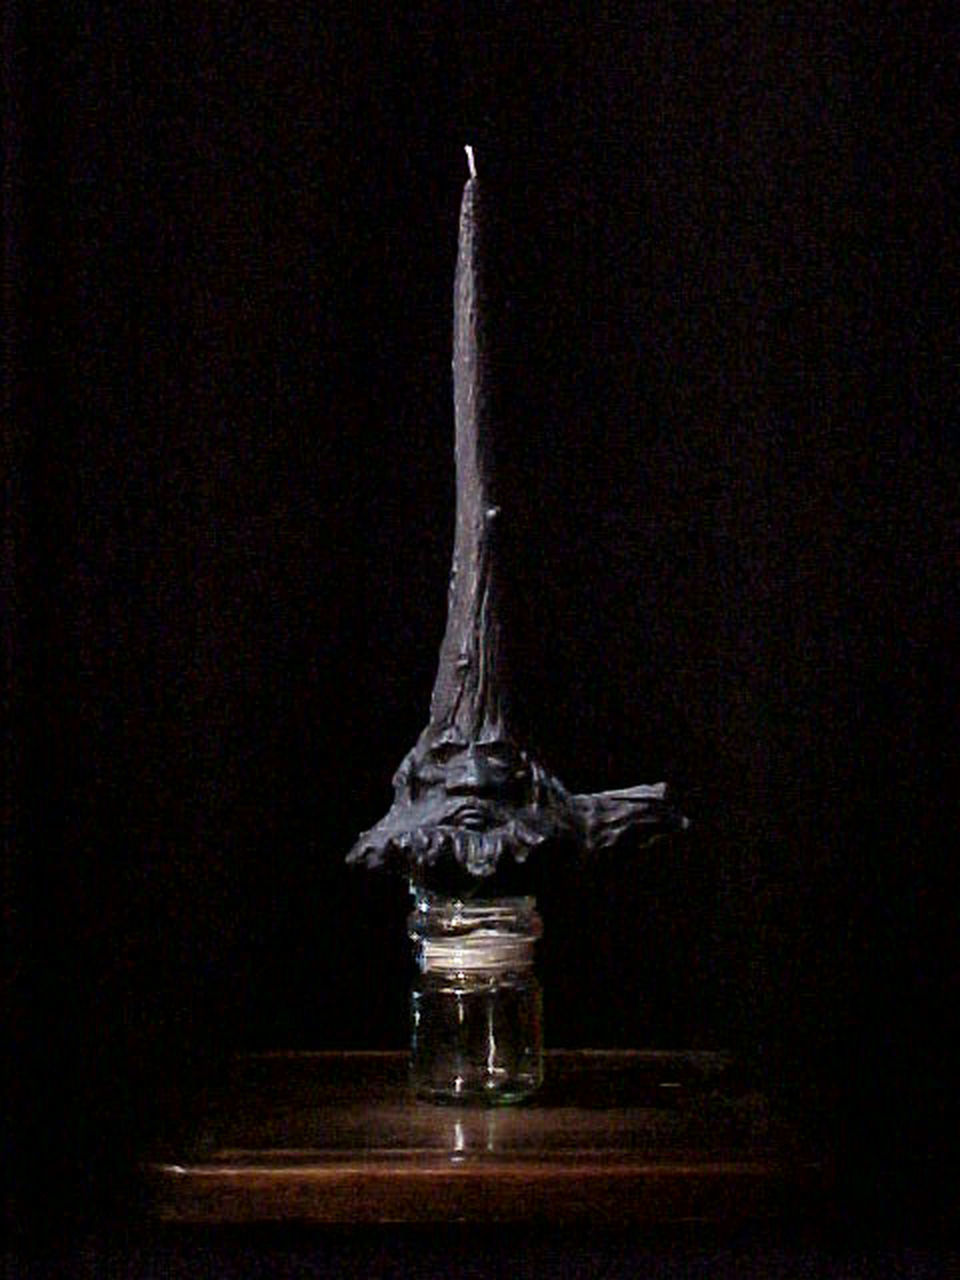 no people, statue, night, indoors, black background, close-up